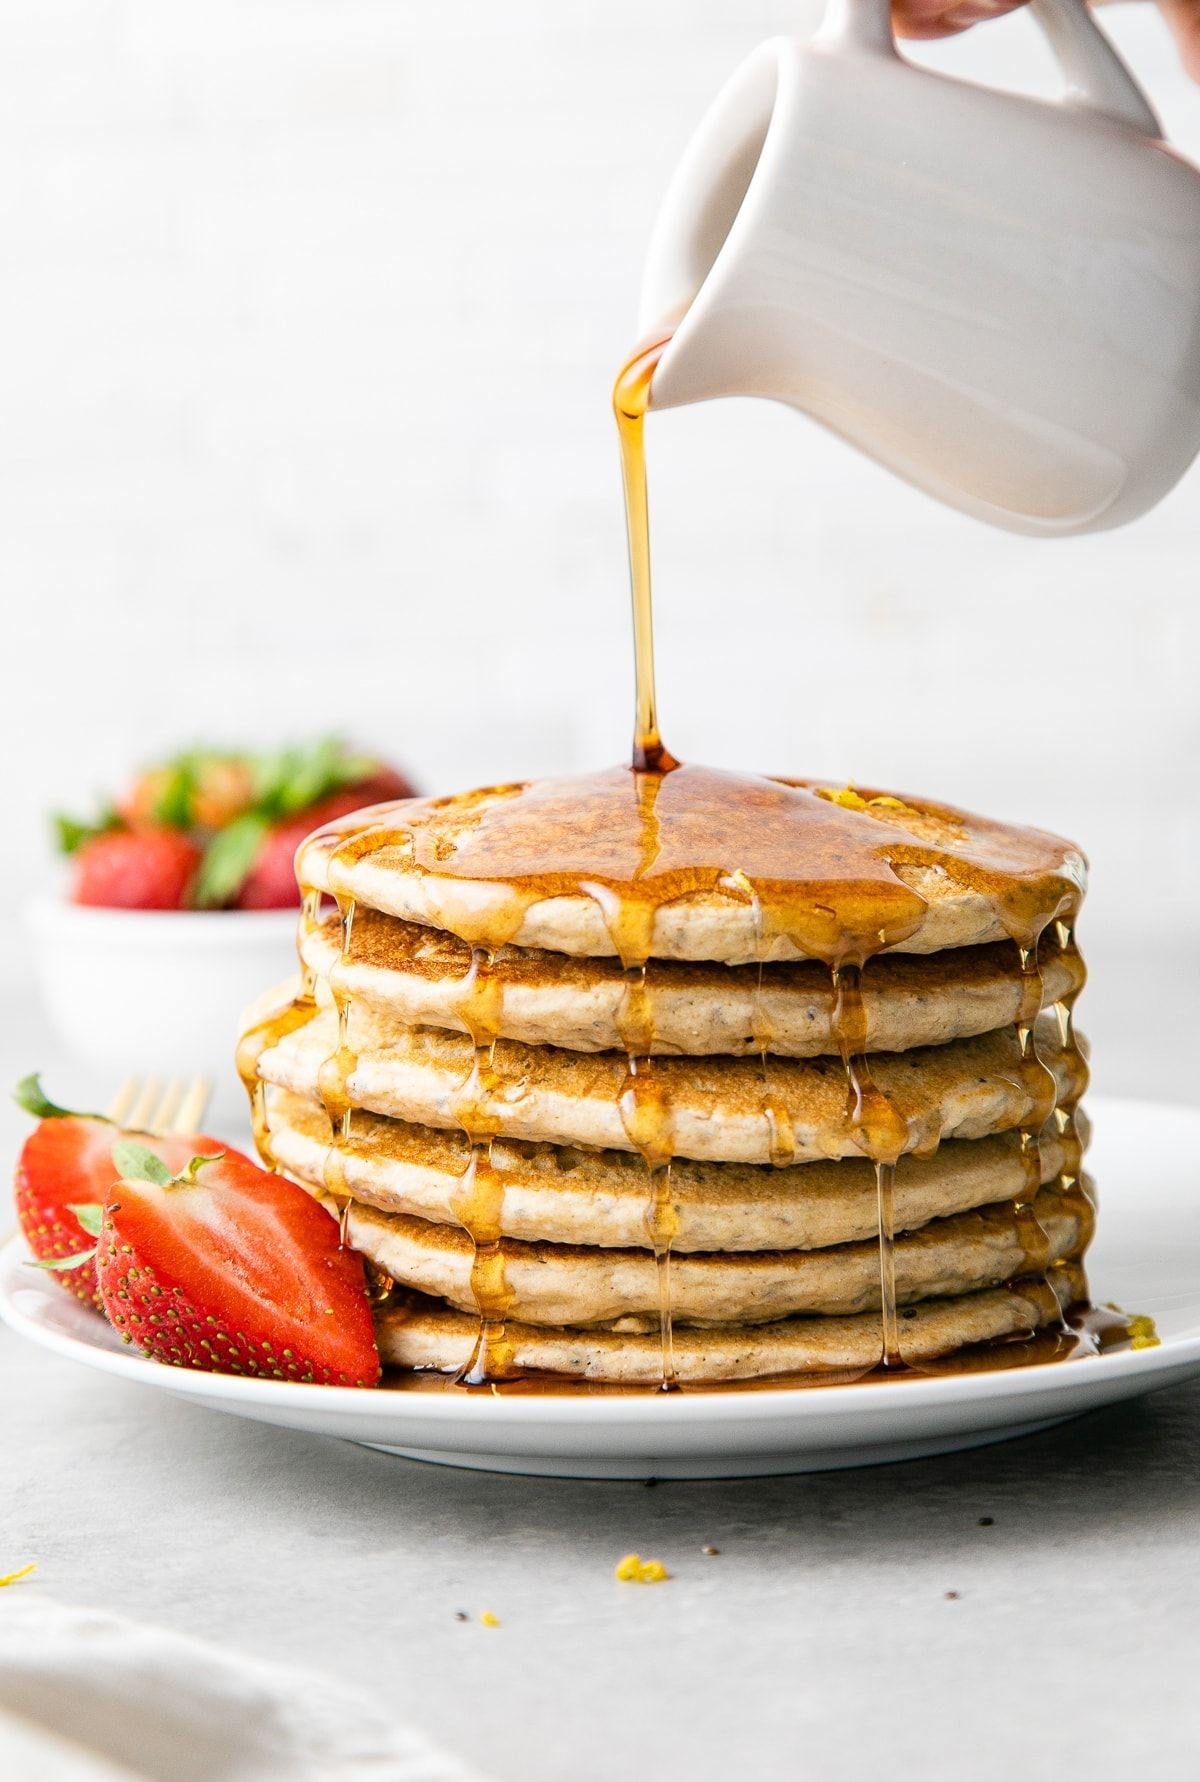 head on view of maple syrup being poured on lemon chia seed pancakes stacked on a small plate.